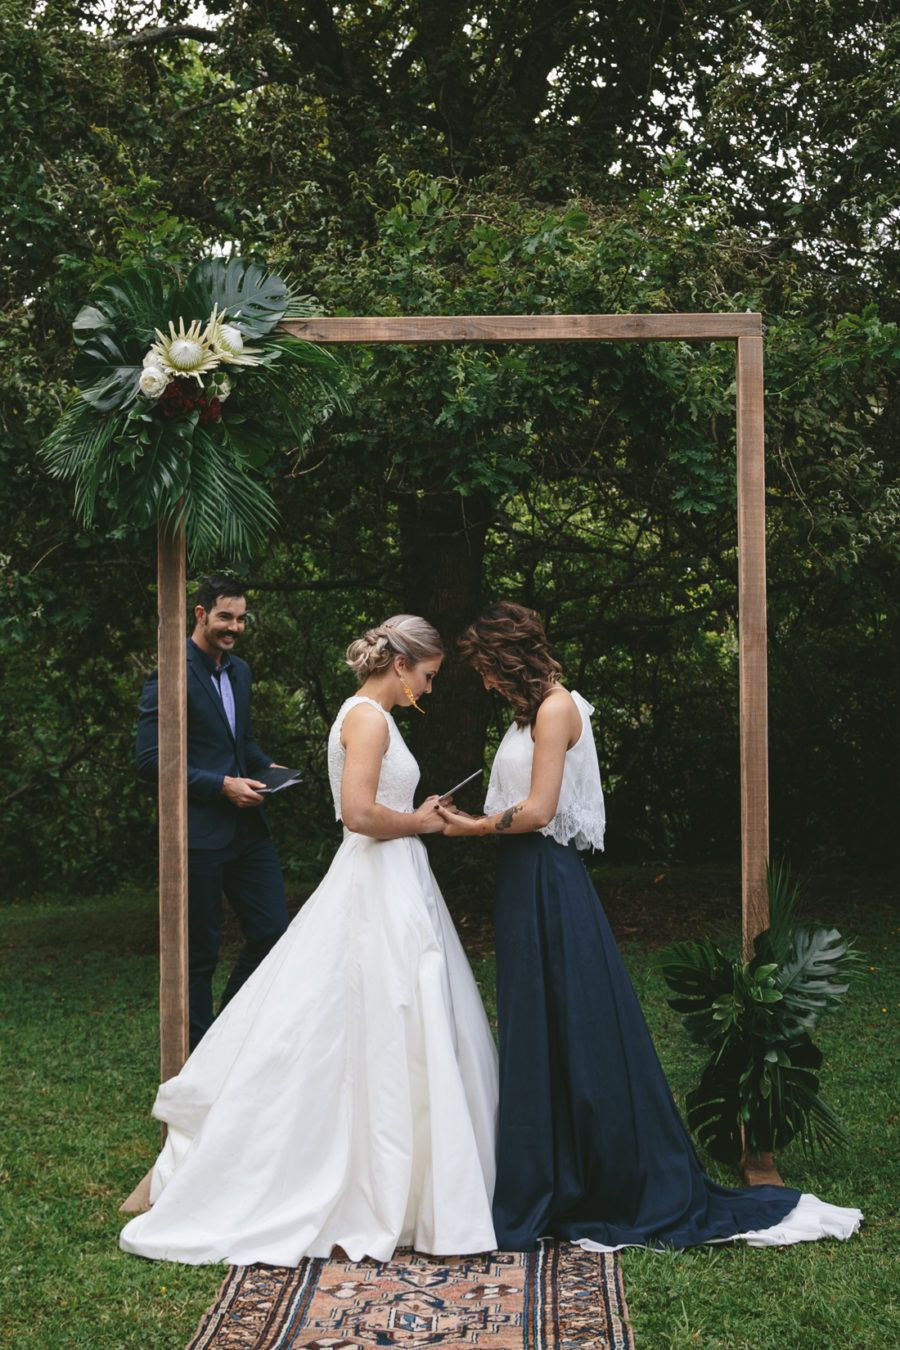 Pin On Queer Lady Wedding Outfits